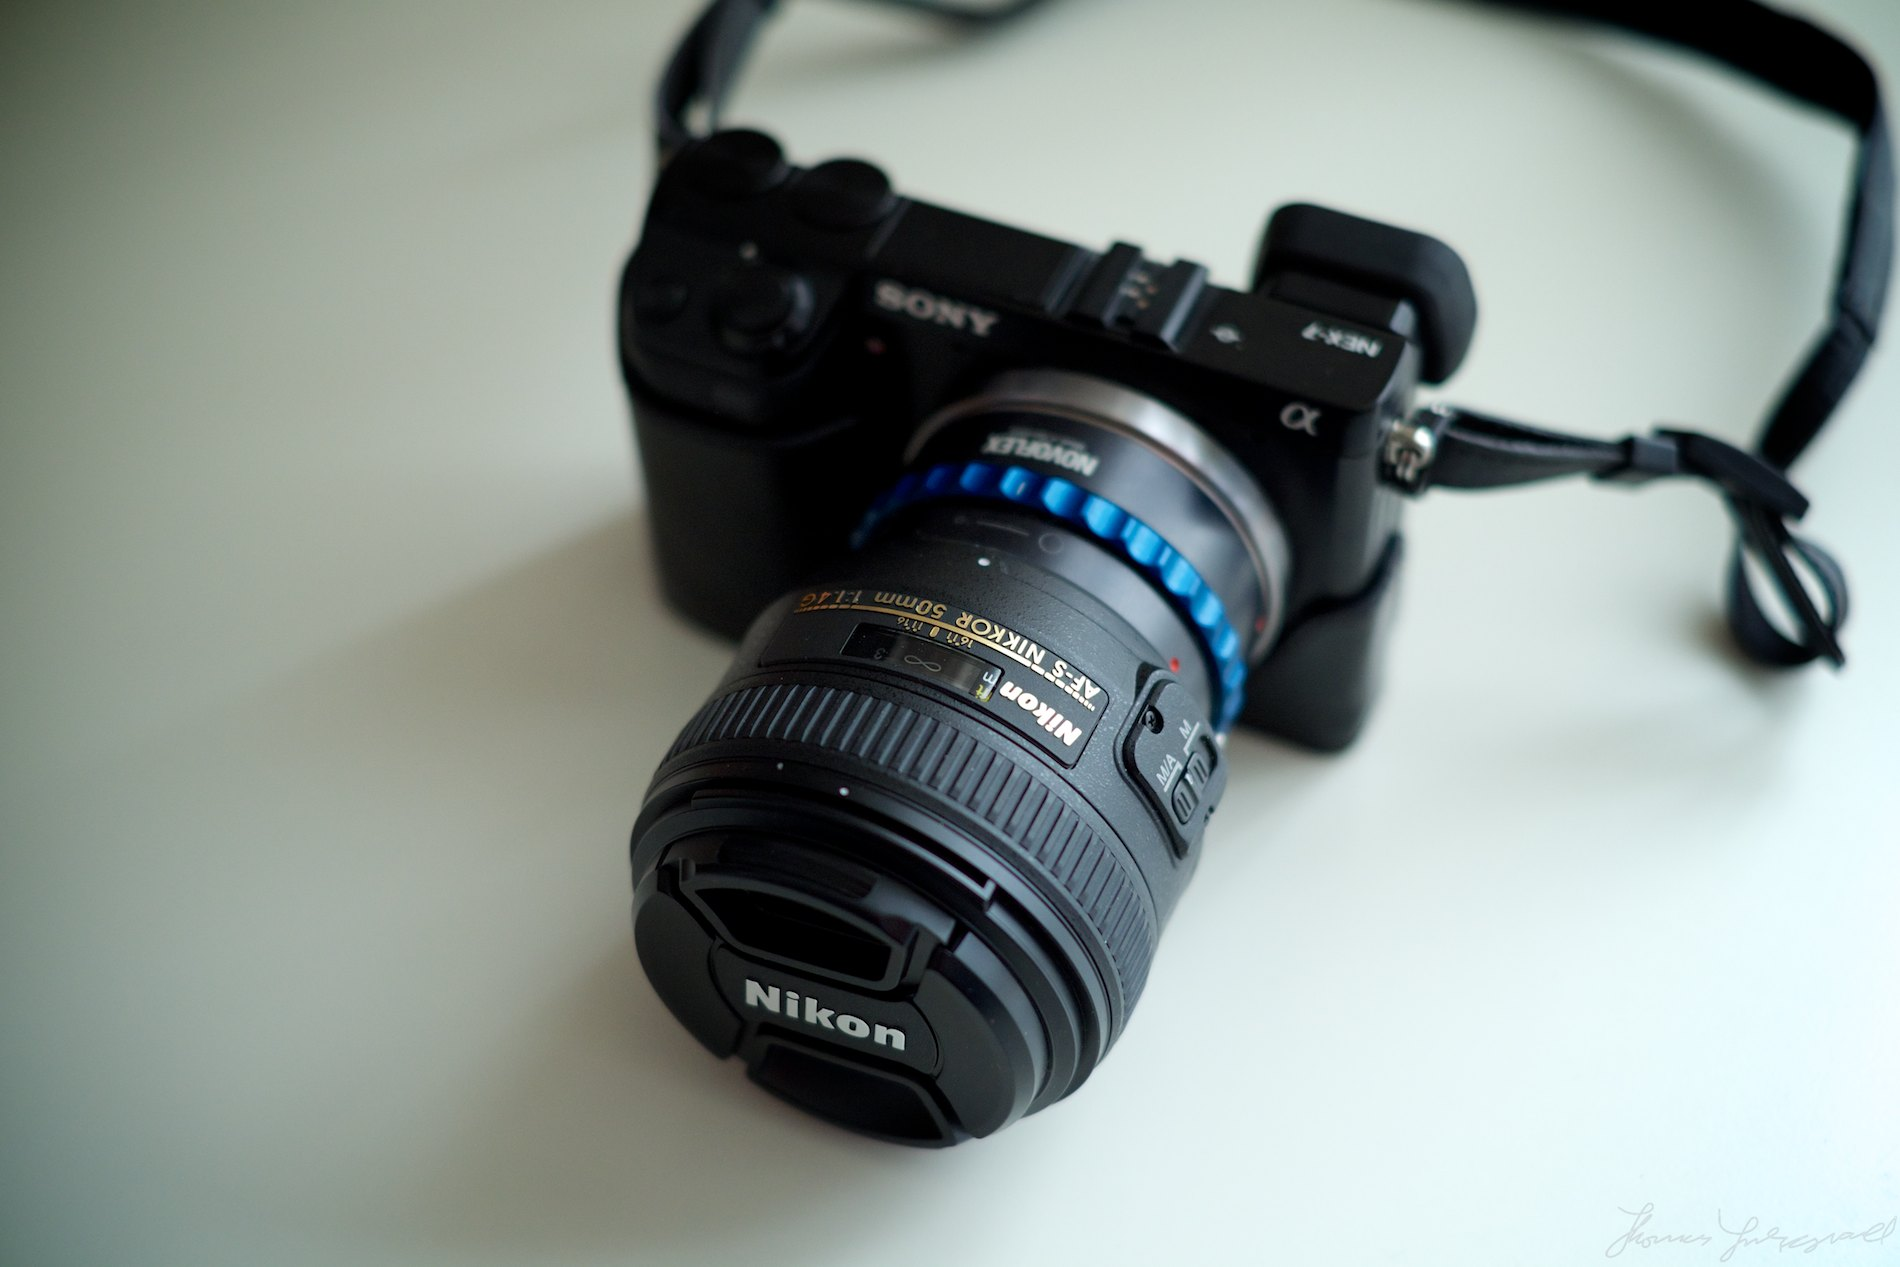 Sony Nex-7 and Nikon 50mm f/1.4 G